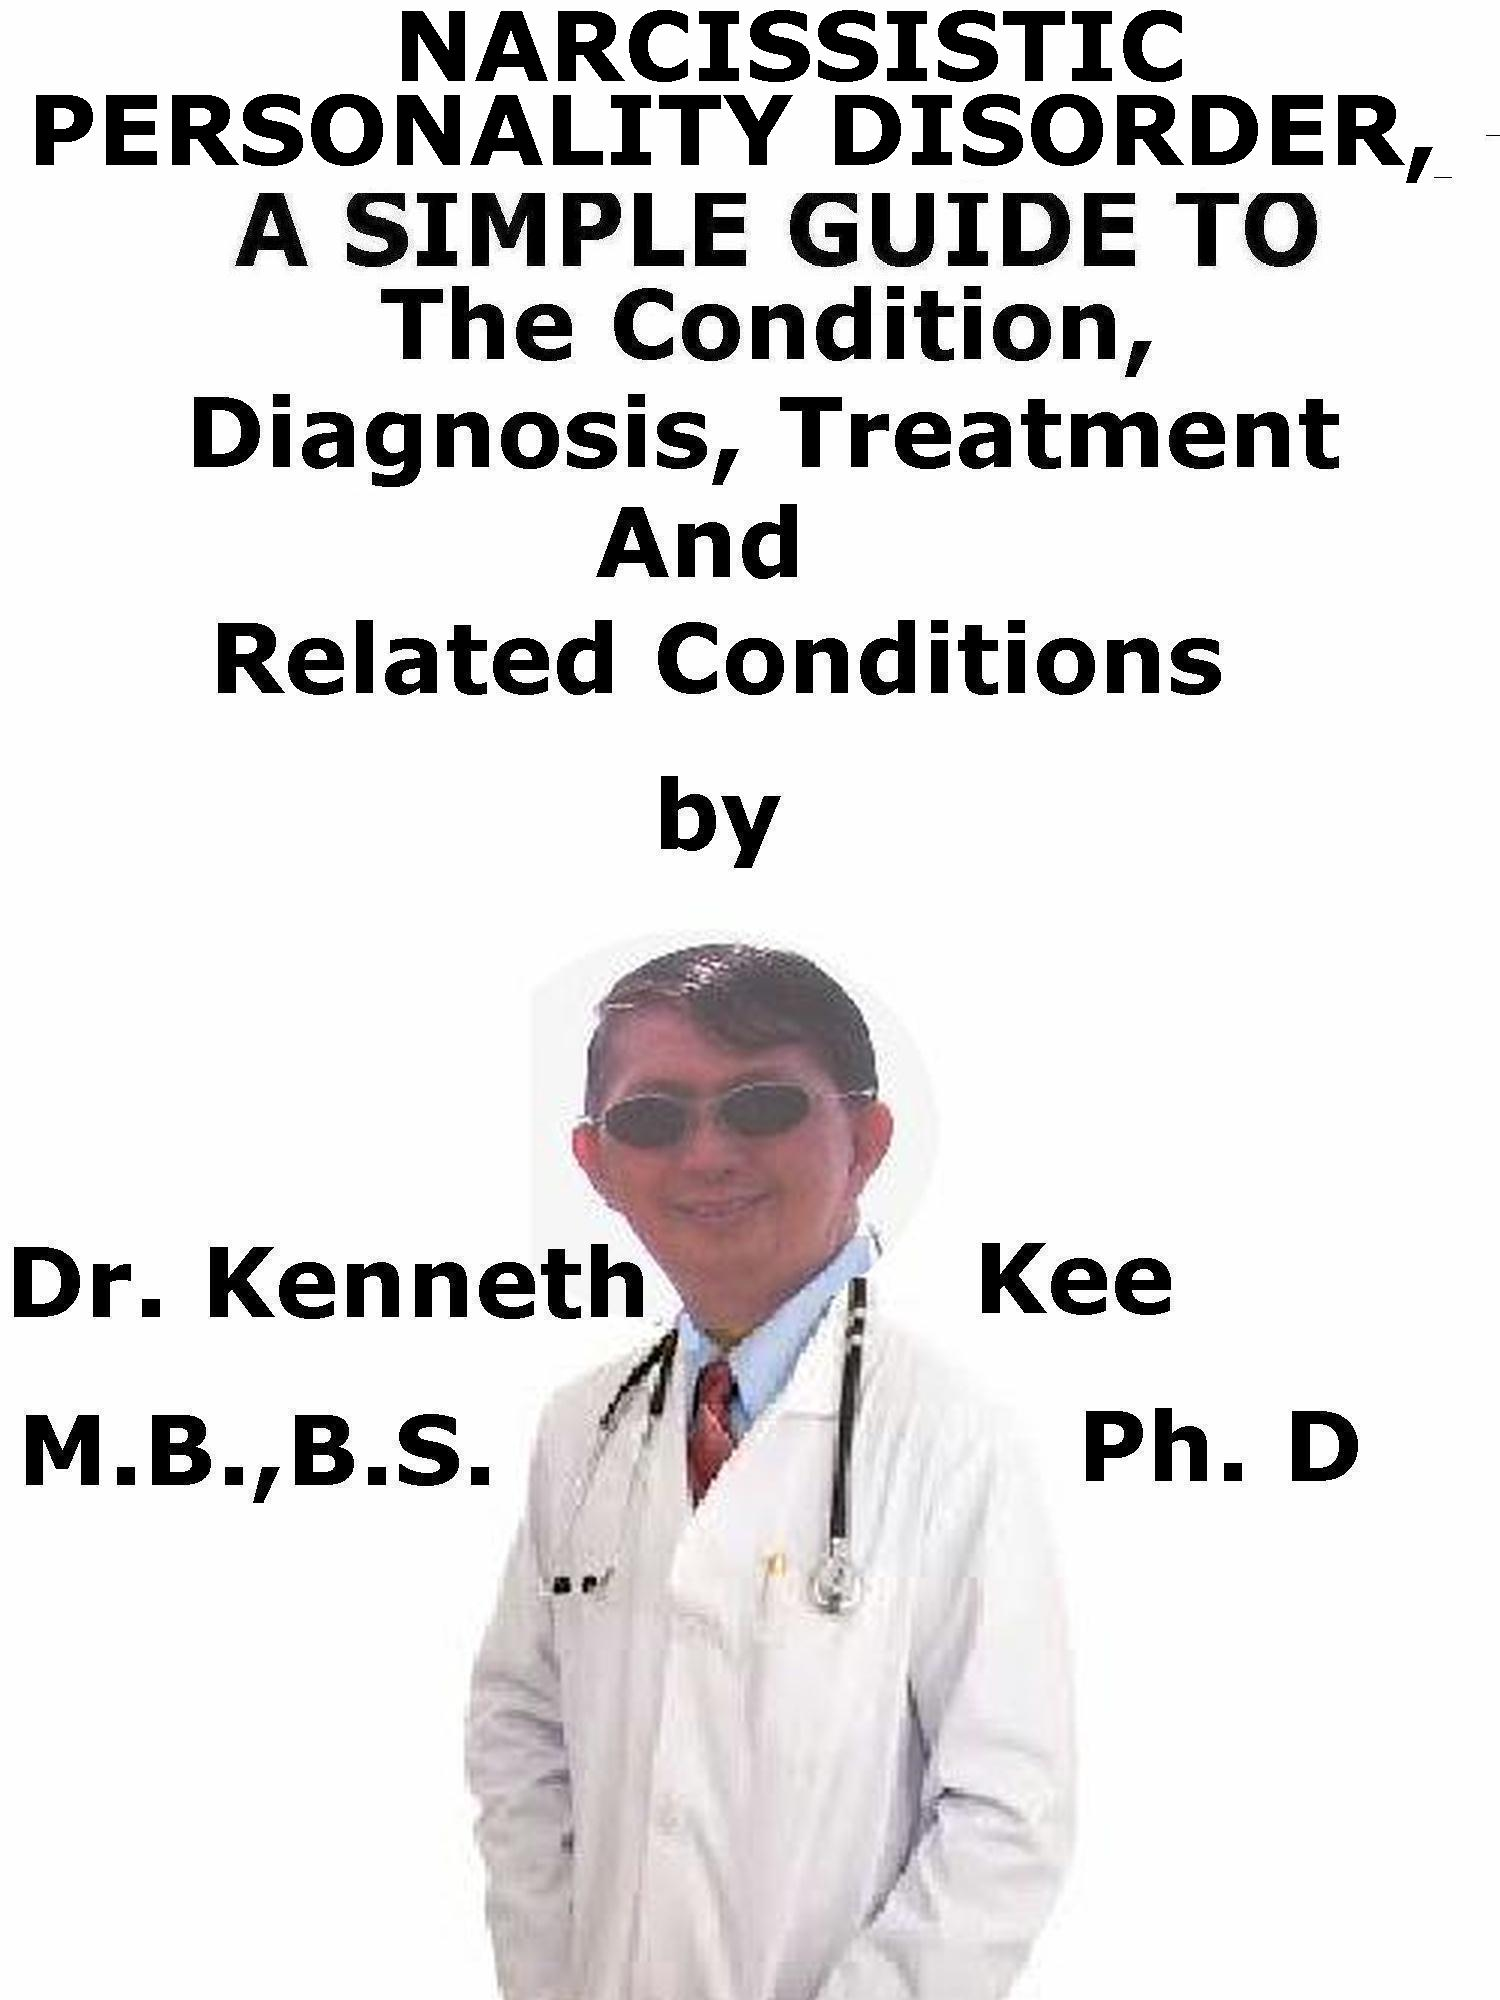 Narcissistic Personality Disorder, A Simple Guide To The Condition,  Diagnosis, Treatment And Related Conditions, an Ebook by Kenneth Kee